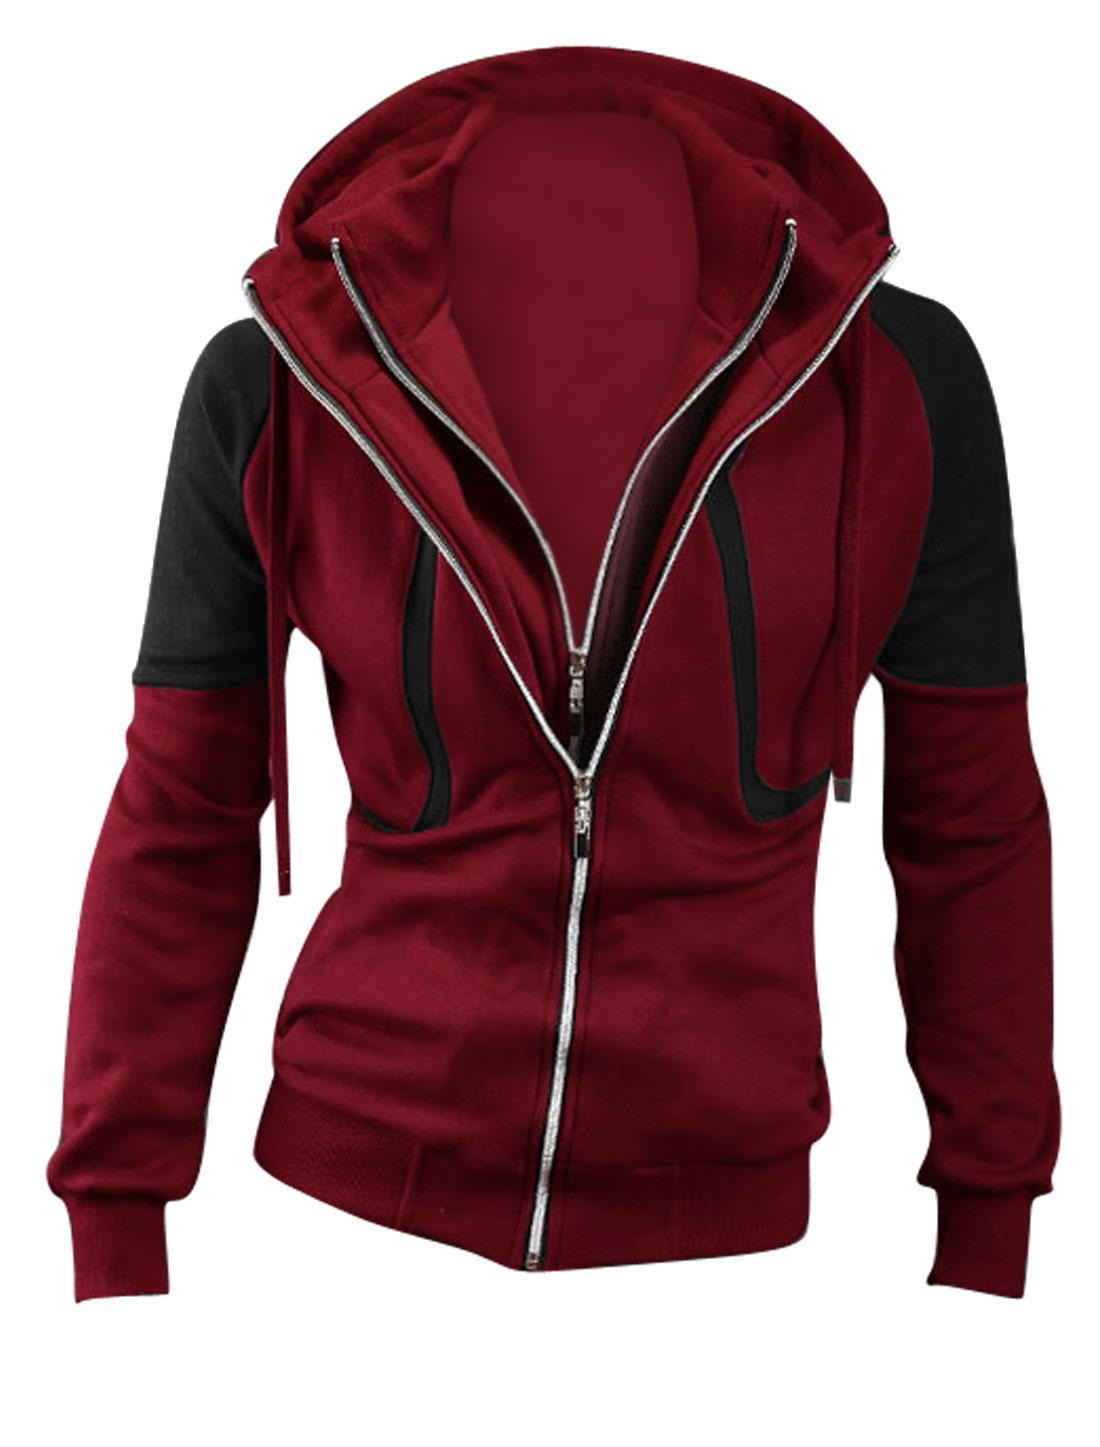 Men Contrast Color Layered Designs Long Sleeve Casual Hooded Jacket Burgundy Black M